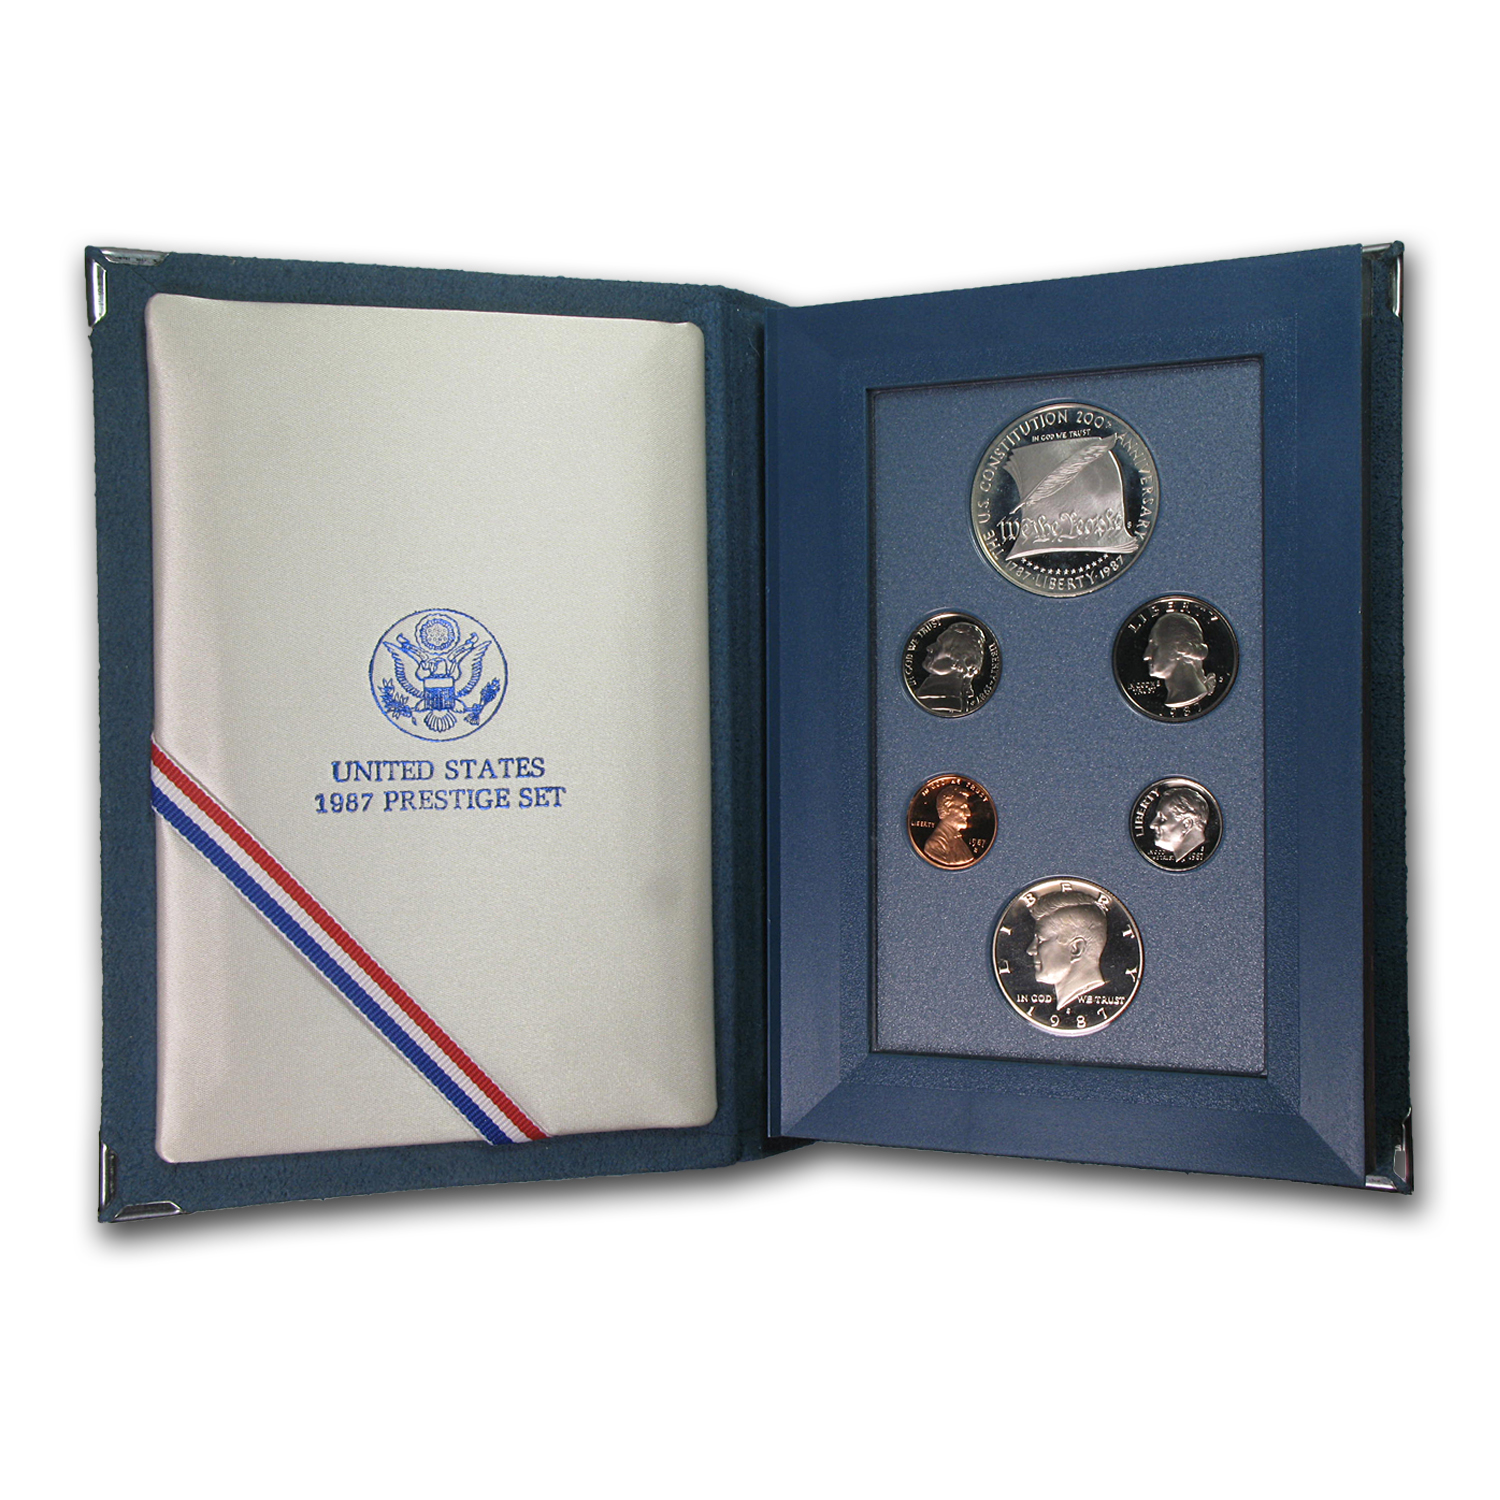 1987 U.S. Mint Prestige Set